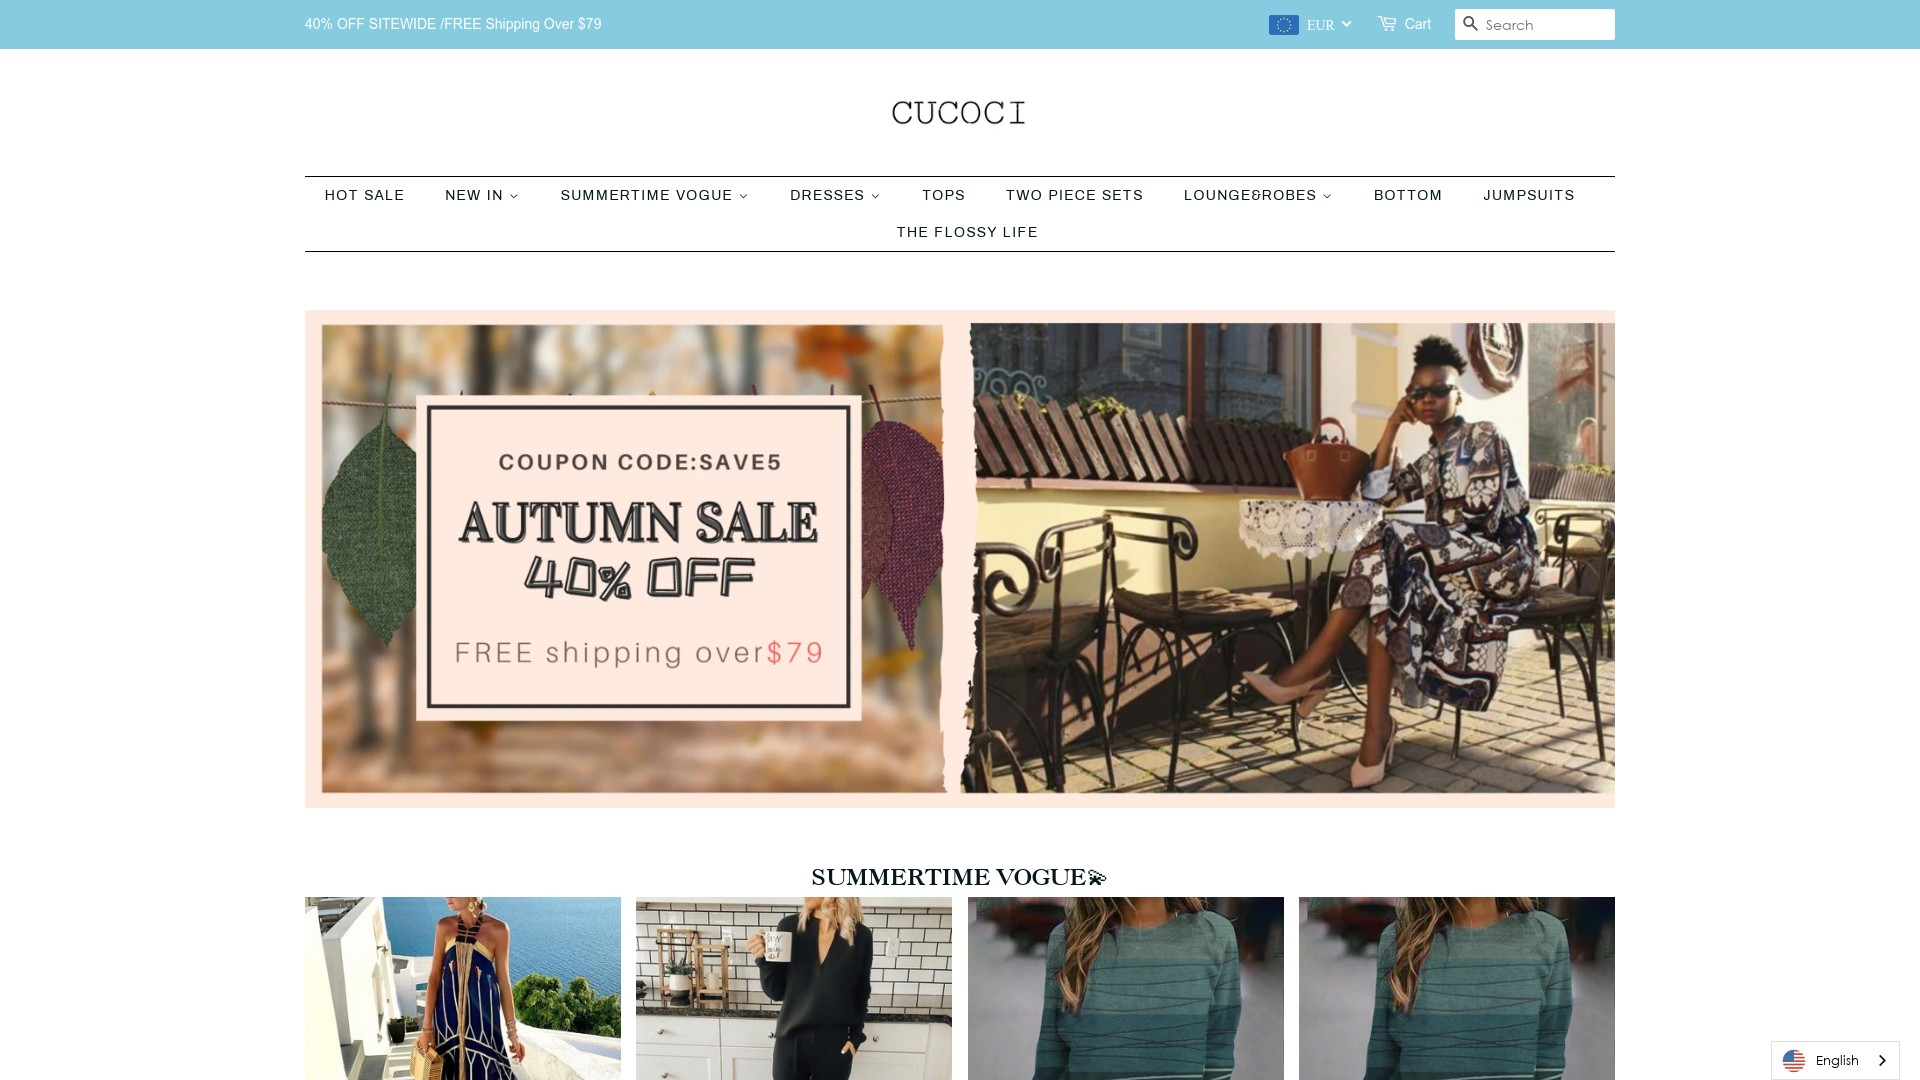 Is Cucoci a Scam? Review of the Online Store